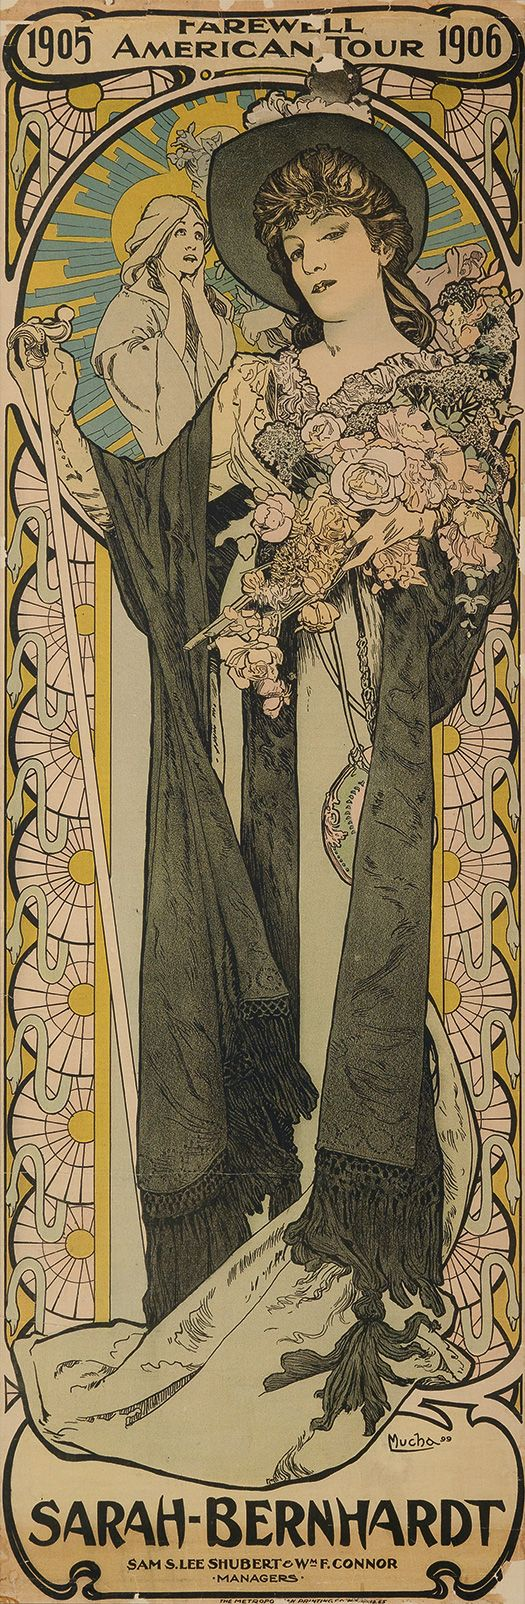 Sarah-Bernhardt / Farewell American Tour 1905-1906 (1905). Alphonse Mucha (Czech, 1860-1939). Poster. The Metropolitan Printing Co., New York. After a long run of European tours which began in 1880, Sarah Bernhardt turned to the United States as a...